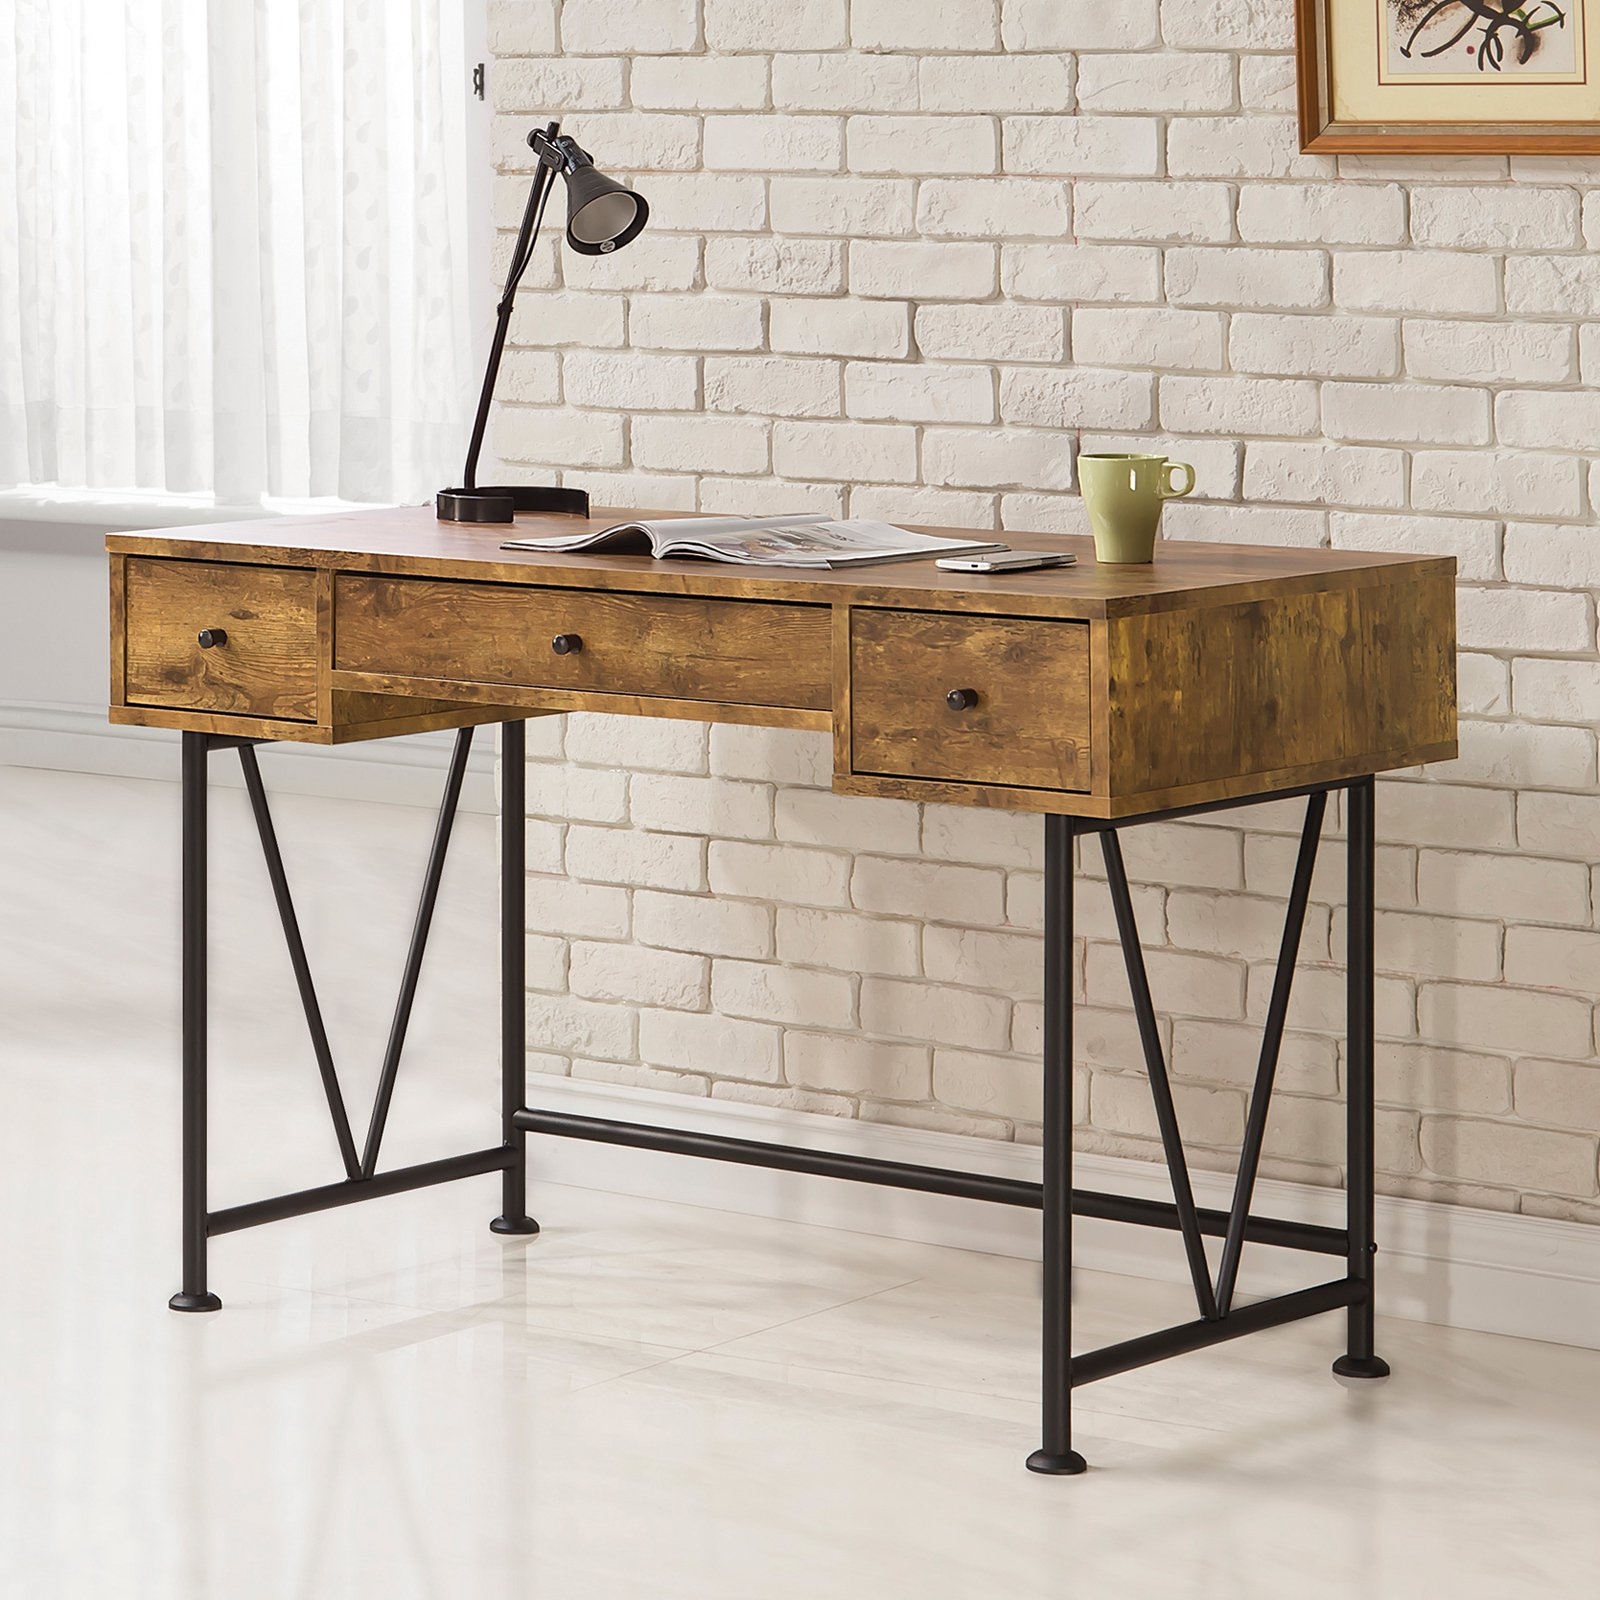 Coaster company writing desk antique nutmeg black walmart com